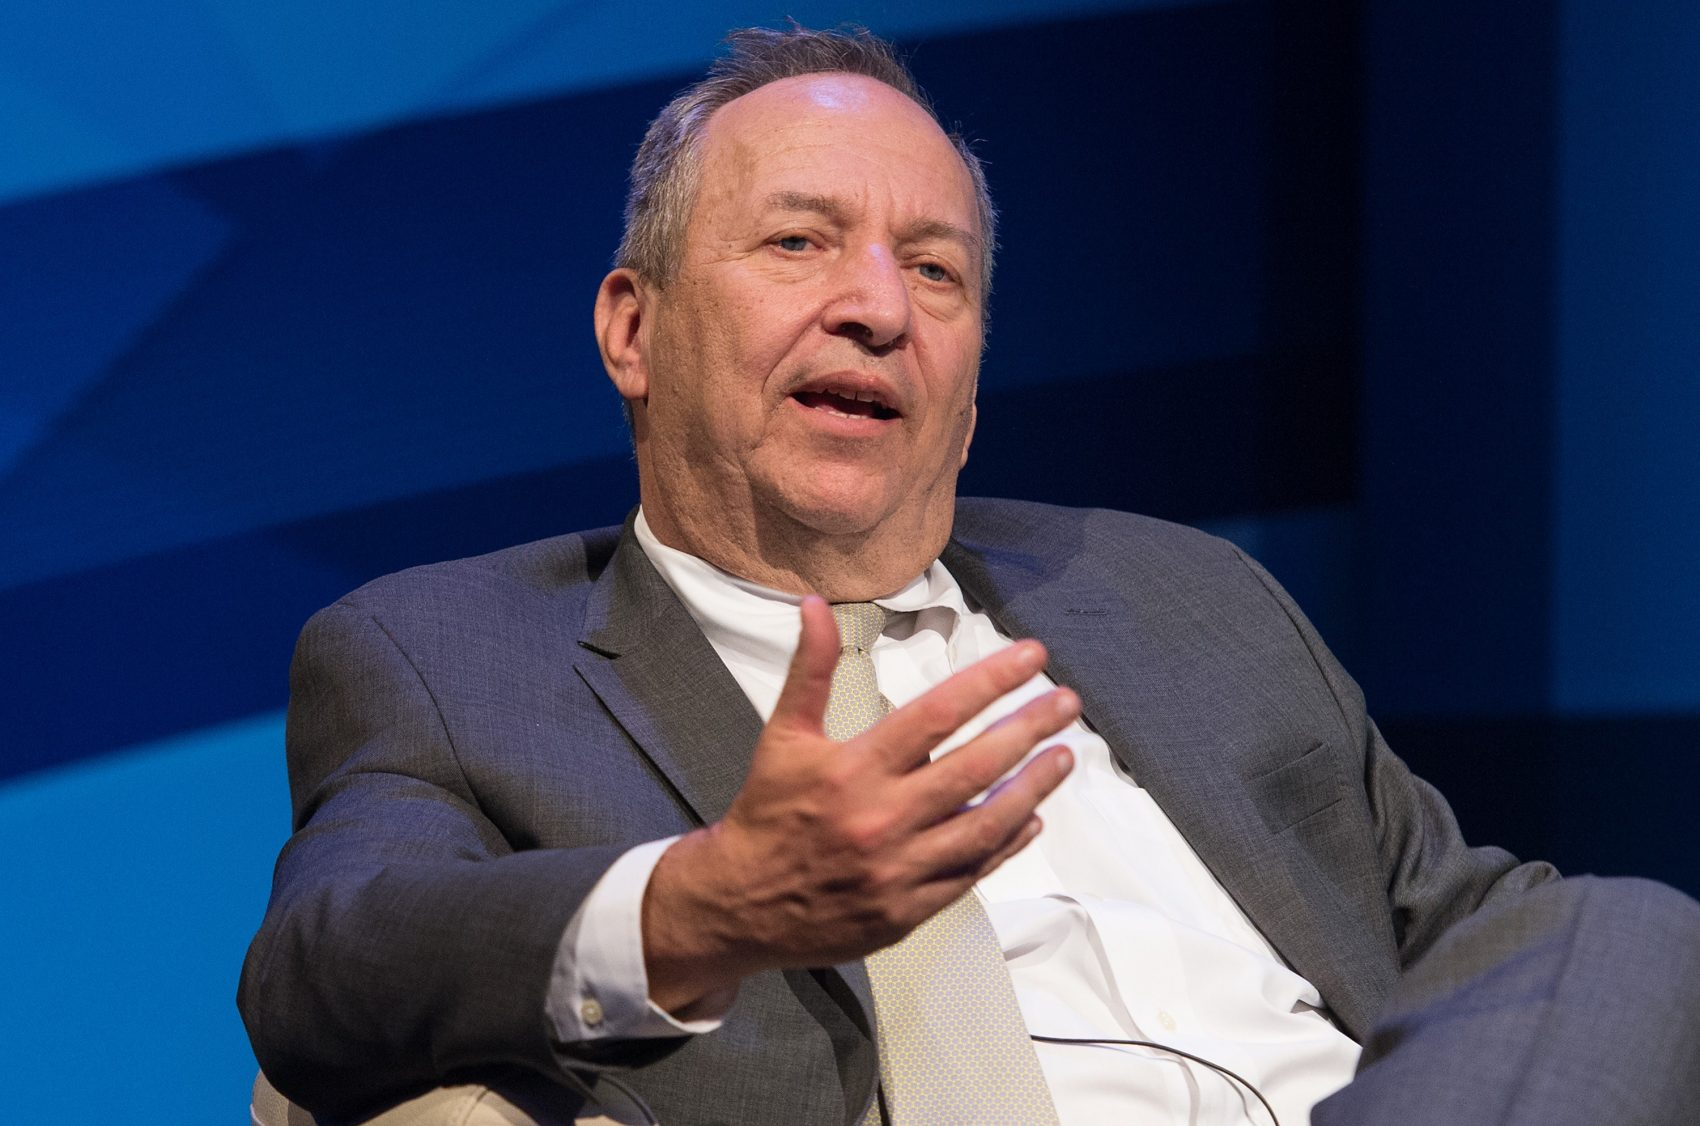 Donate Your Car >> Former Treasury Secretary Larry Summers On What 'Brexit' Means For The U.S. | Here & Now